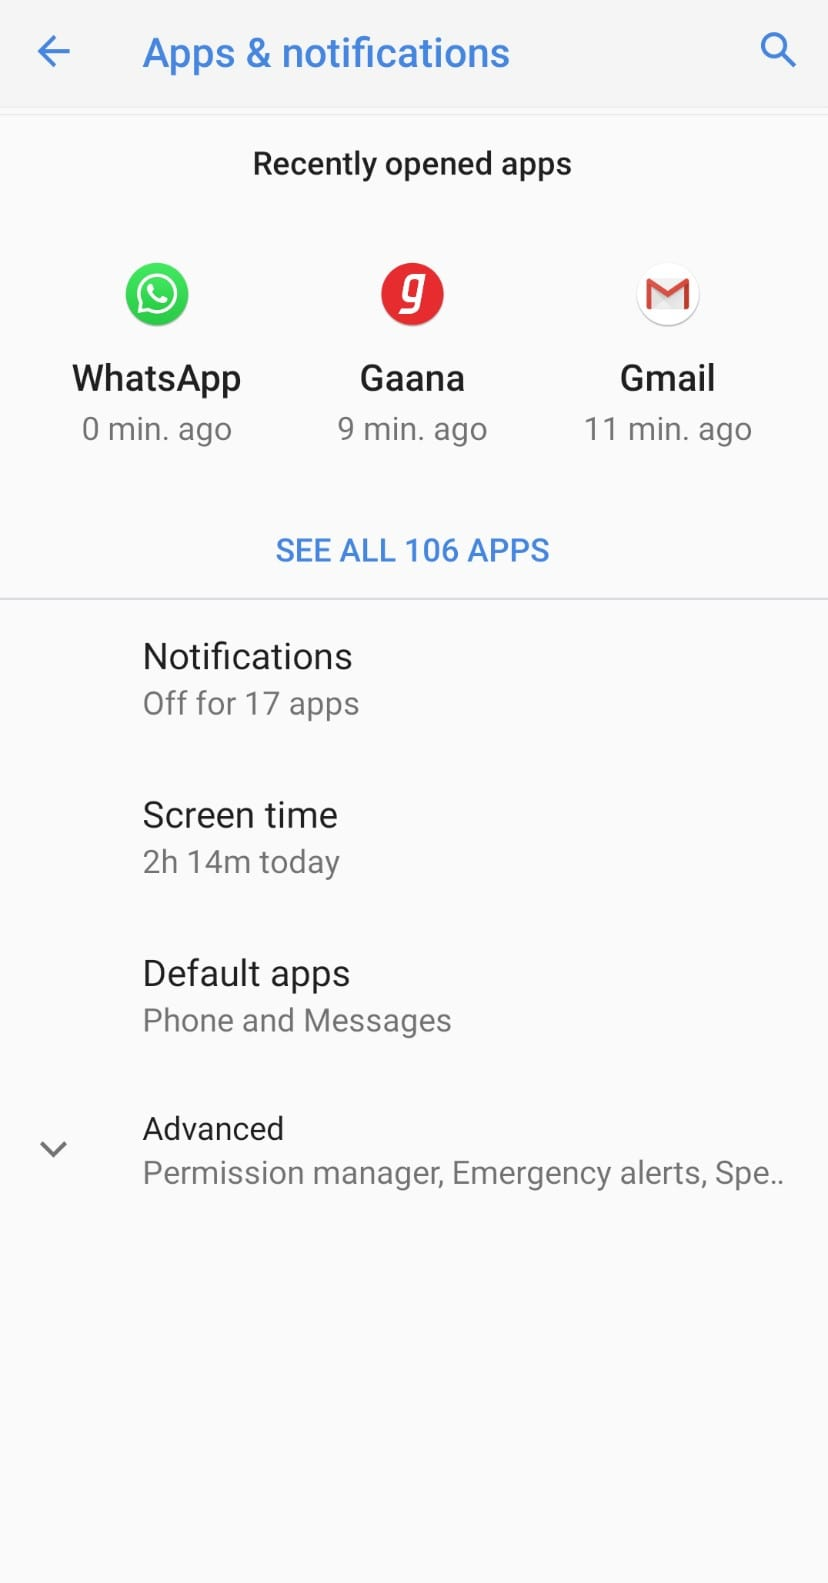 apps and notifications